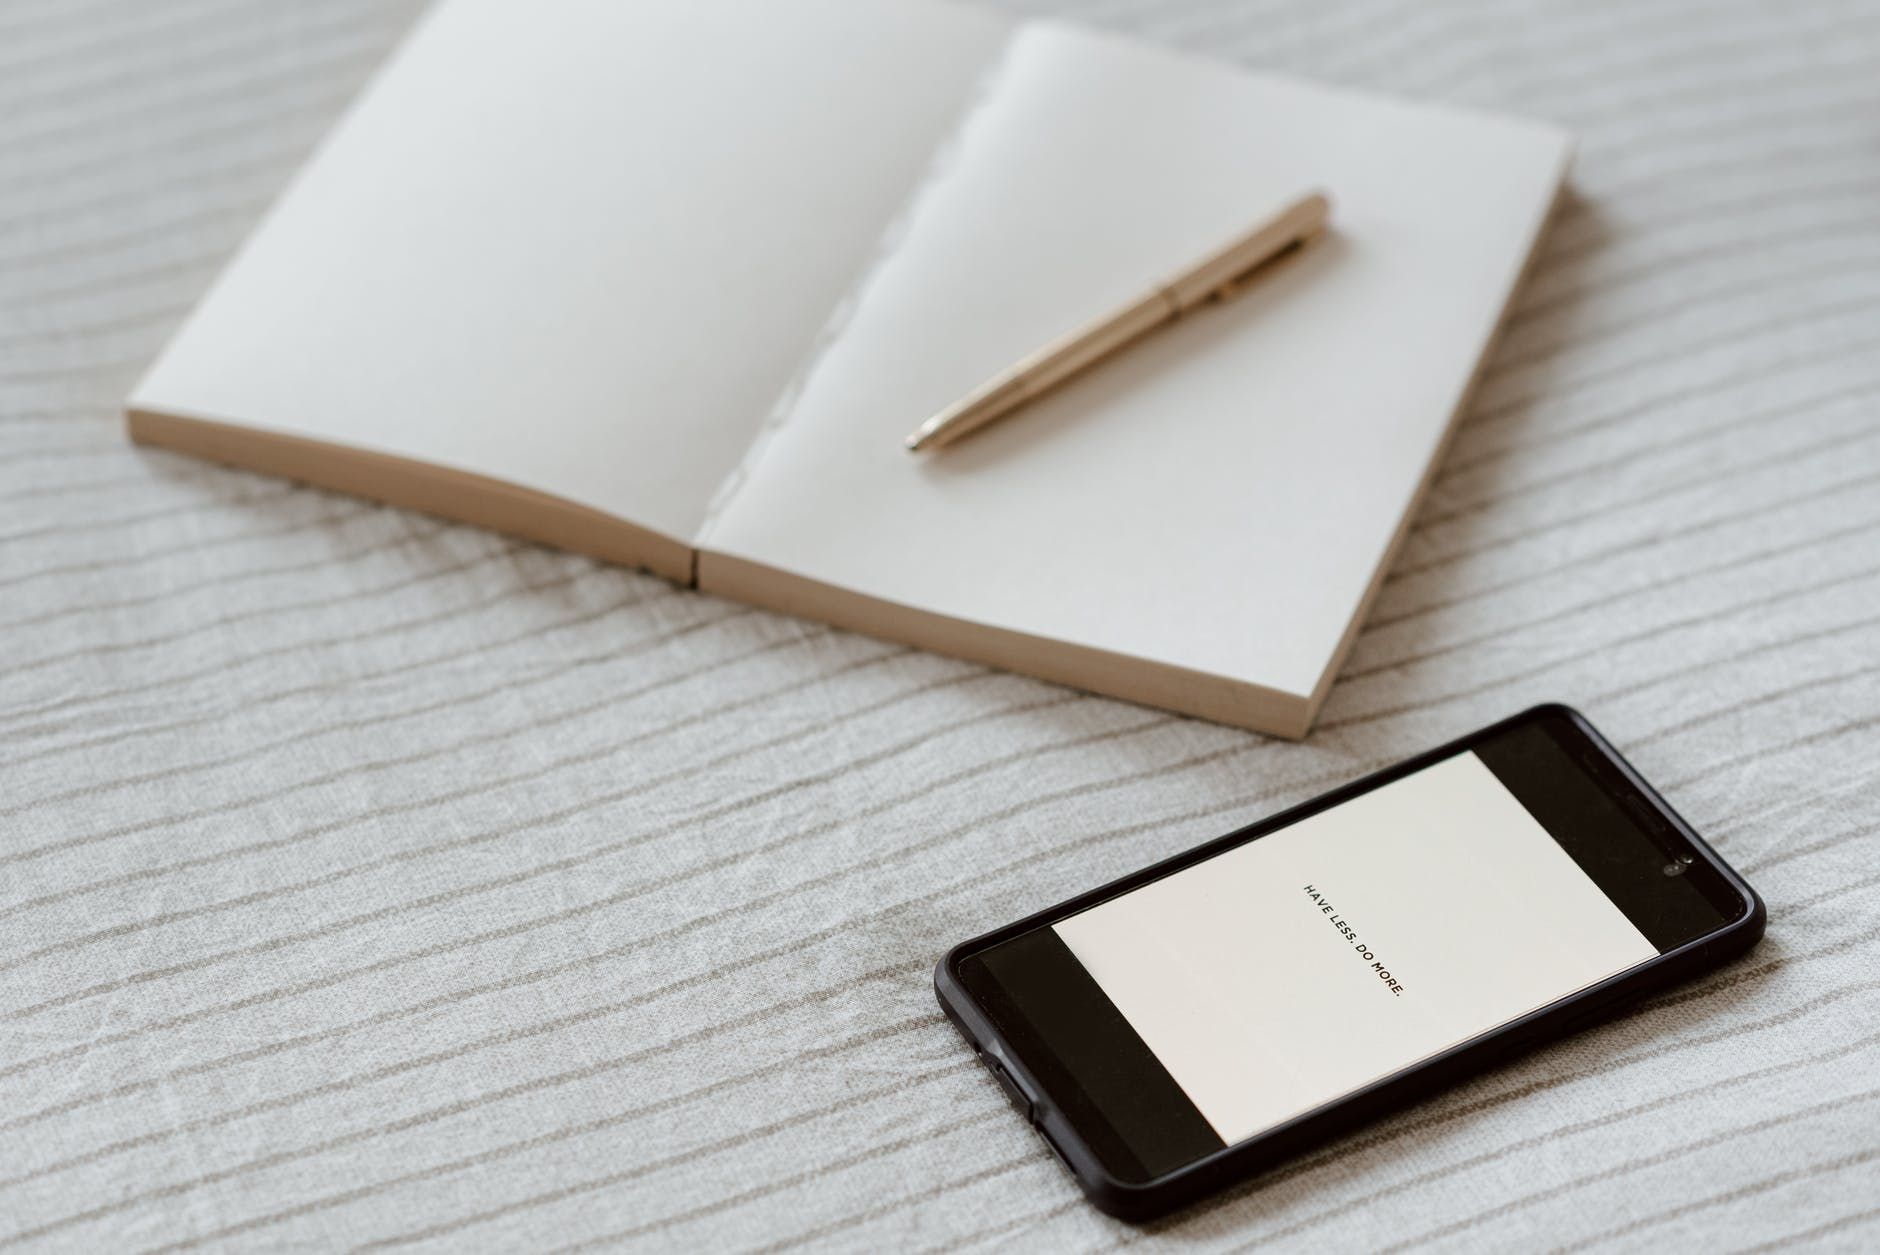 smartphone near empty notebook with pen on bed